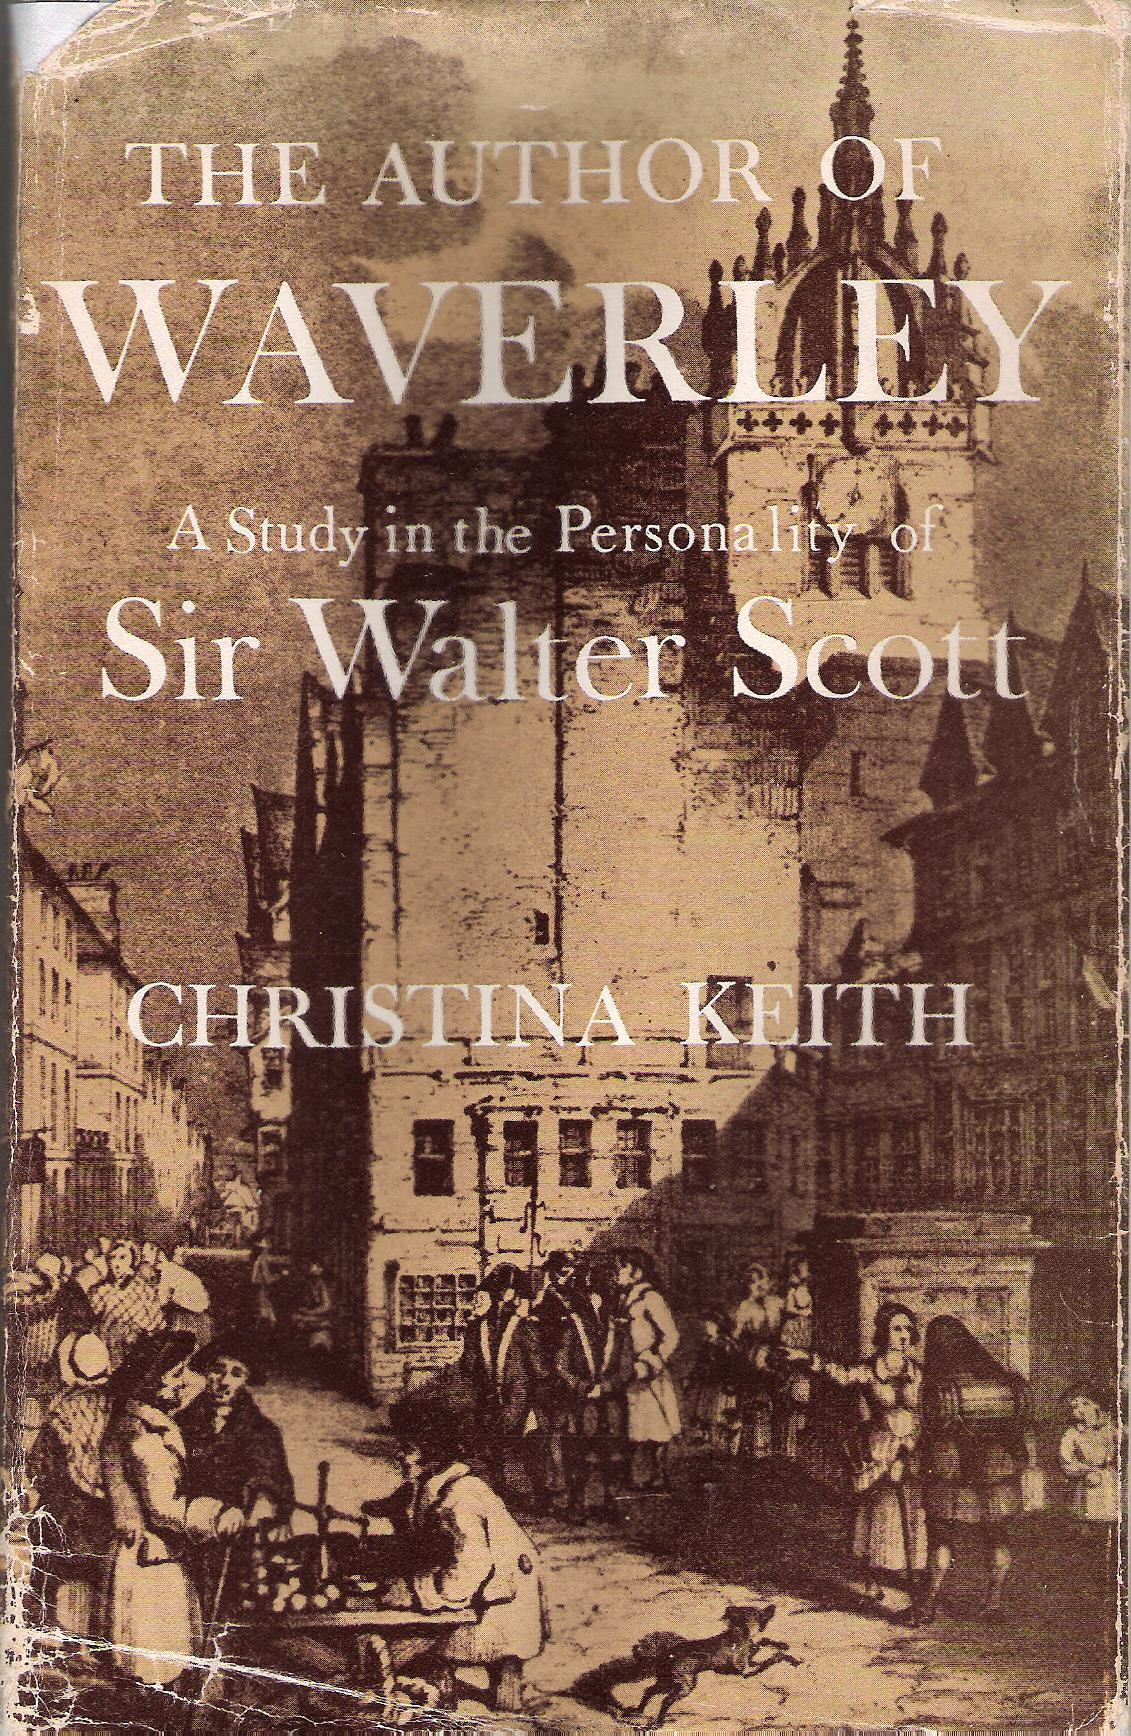 Image for The Author of Waverly: A Study in the Personality of Sir Walter Scott.